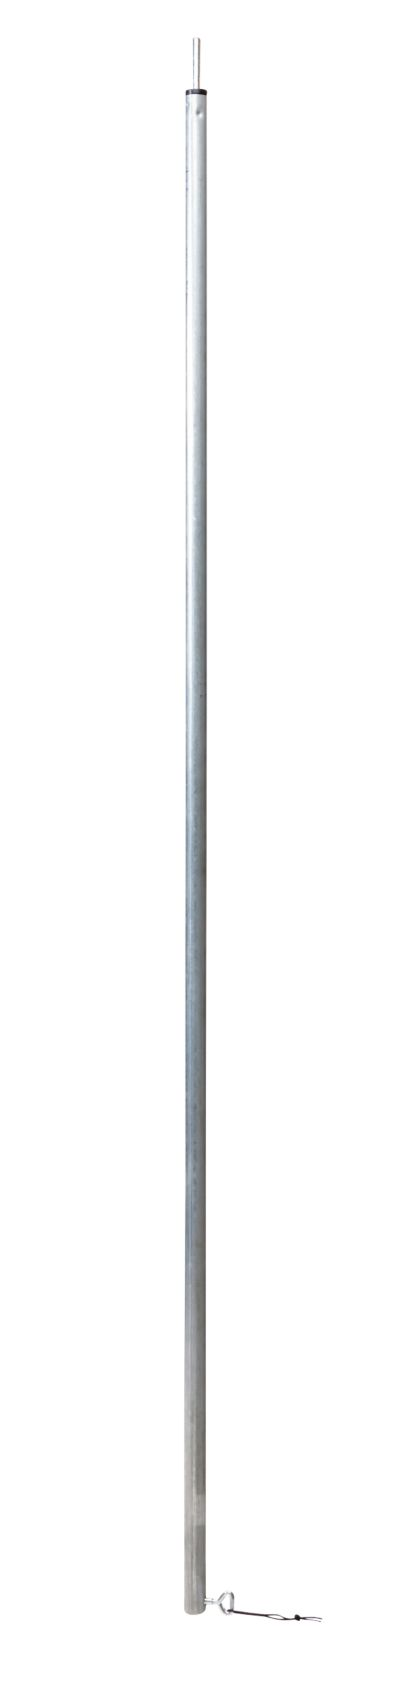 Adjustable Tent Pole (2.7M)